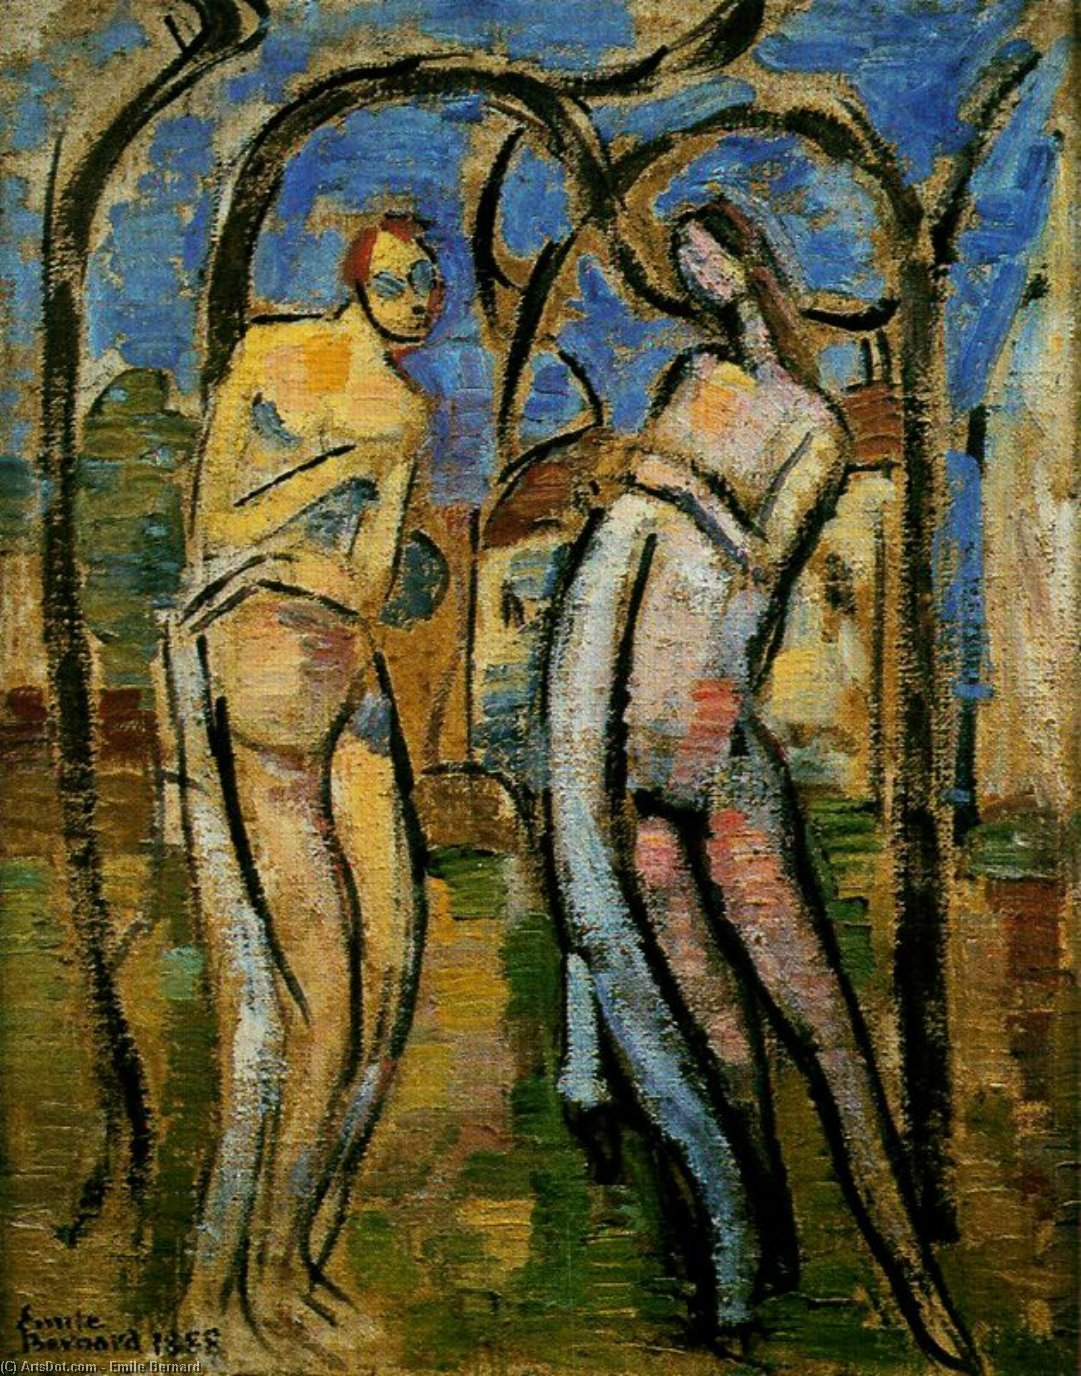 eve et adam de Emile Bernard (1868-1941, France)